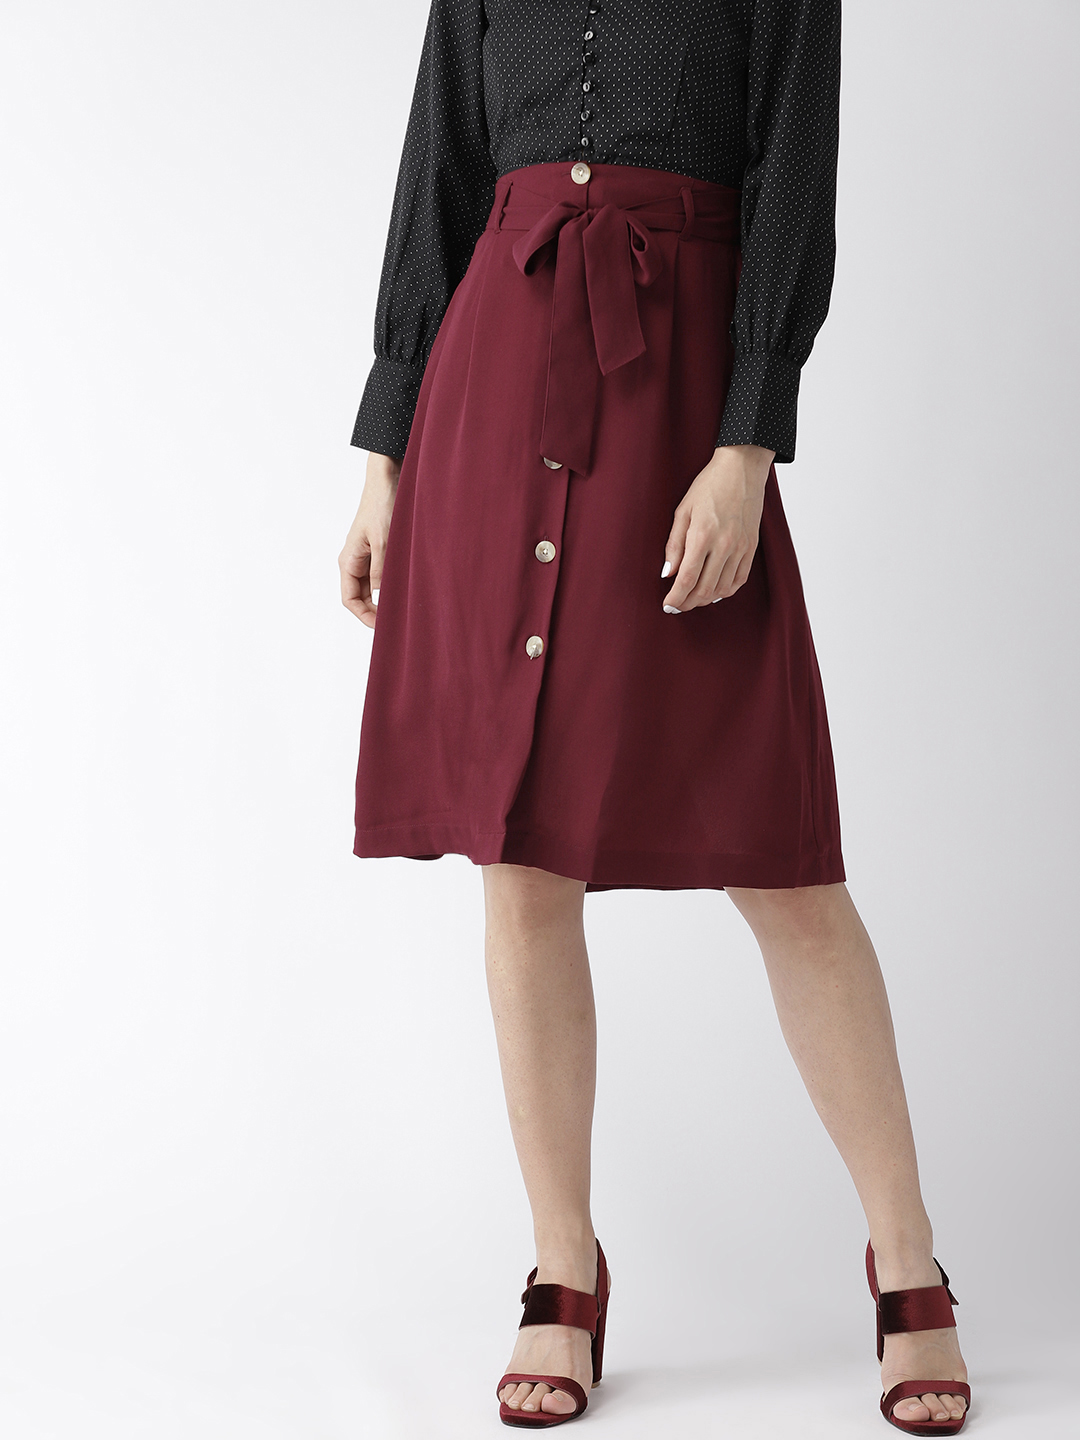 Shorts and Skirts-The Sweet Spot Button Down Skirt1